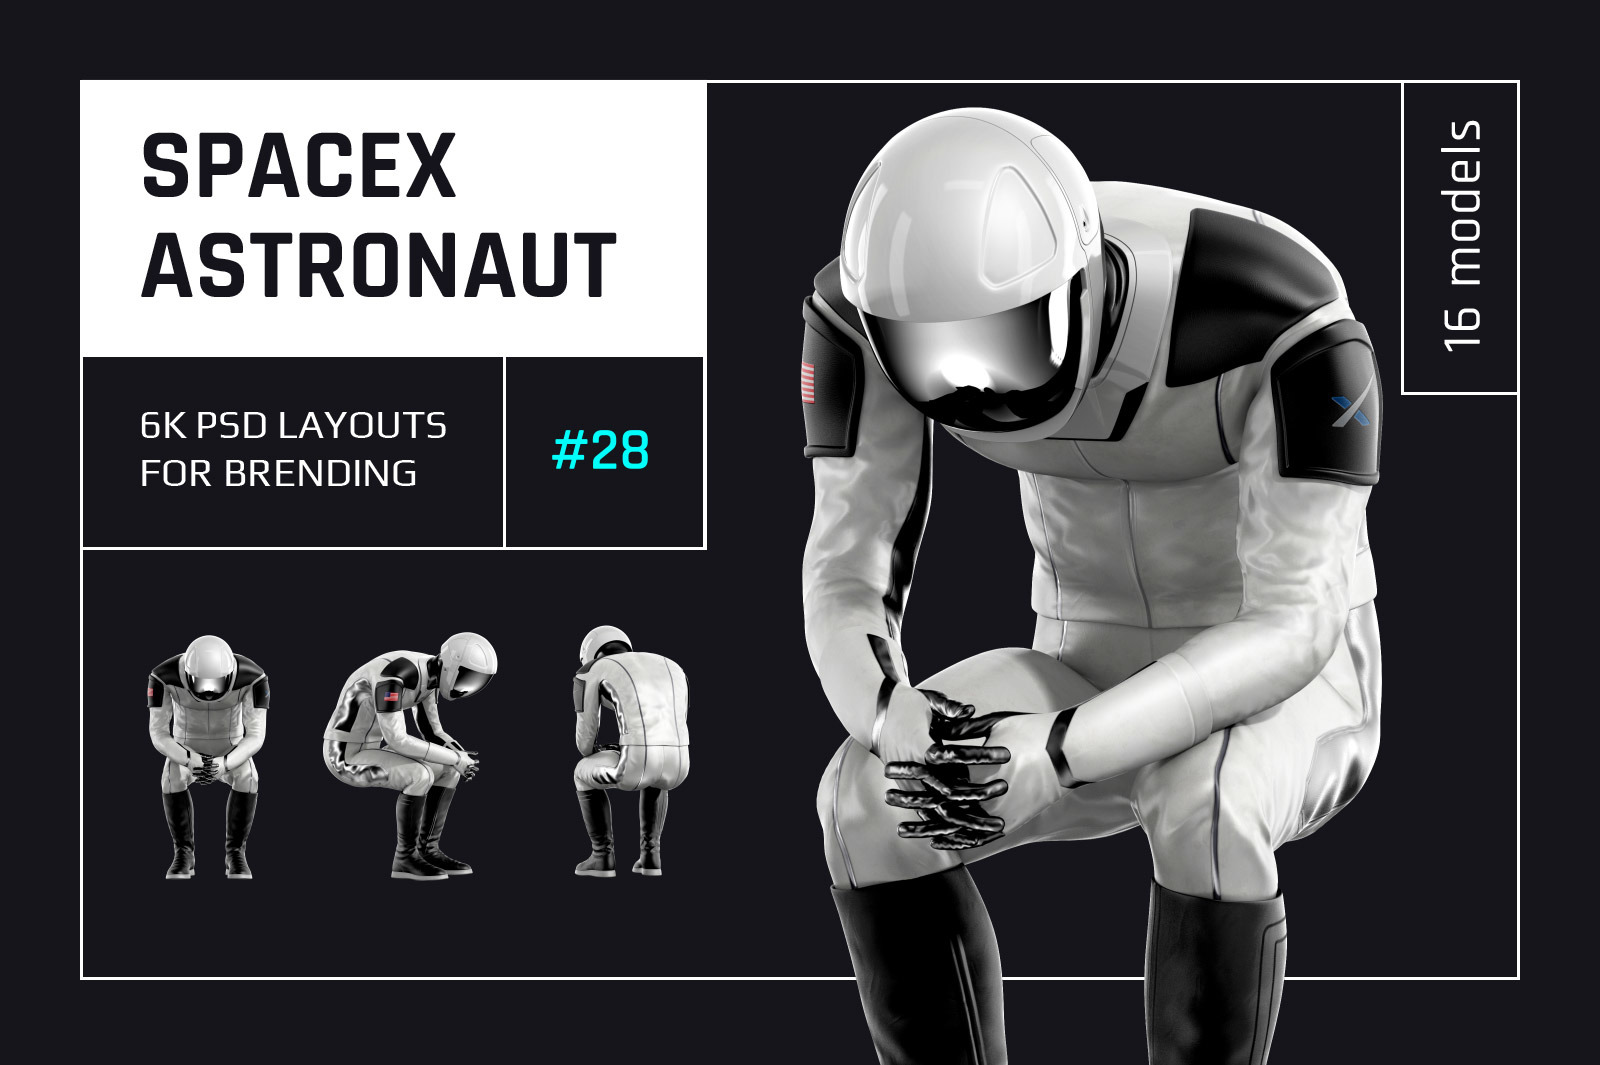 PSD Mockup 3D model SpaceX Astronaut #28